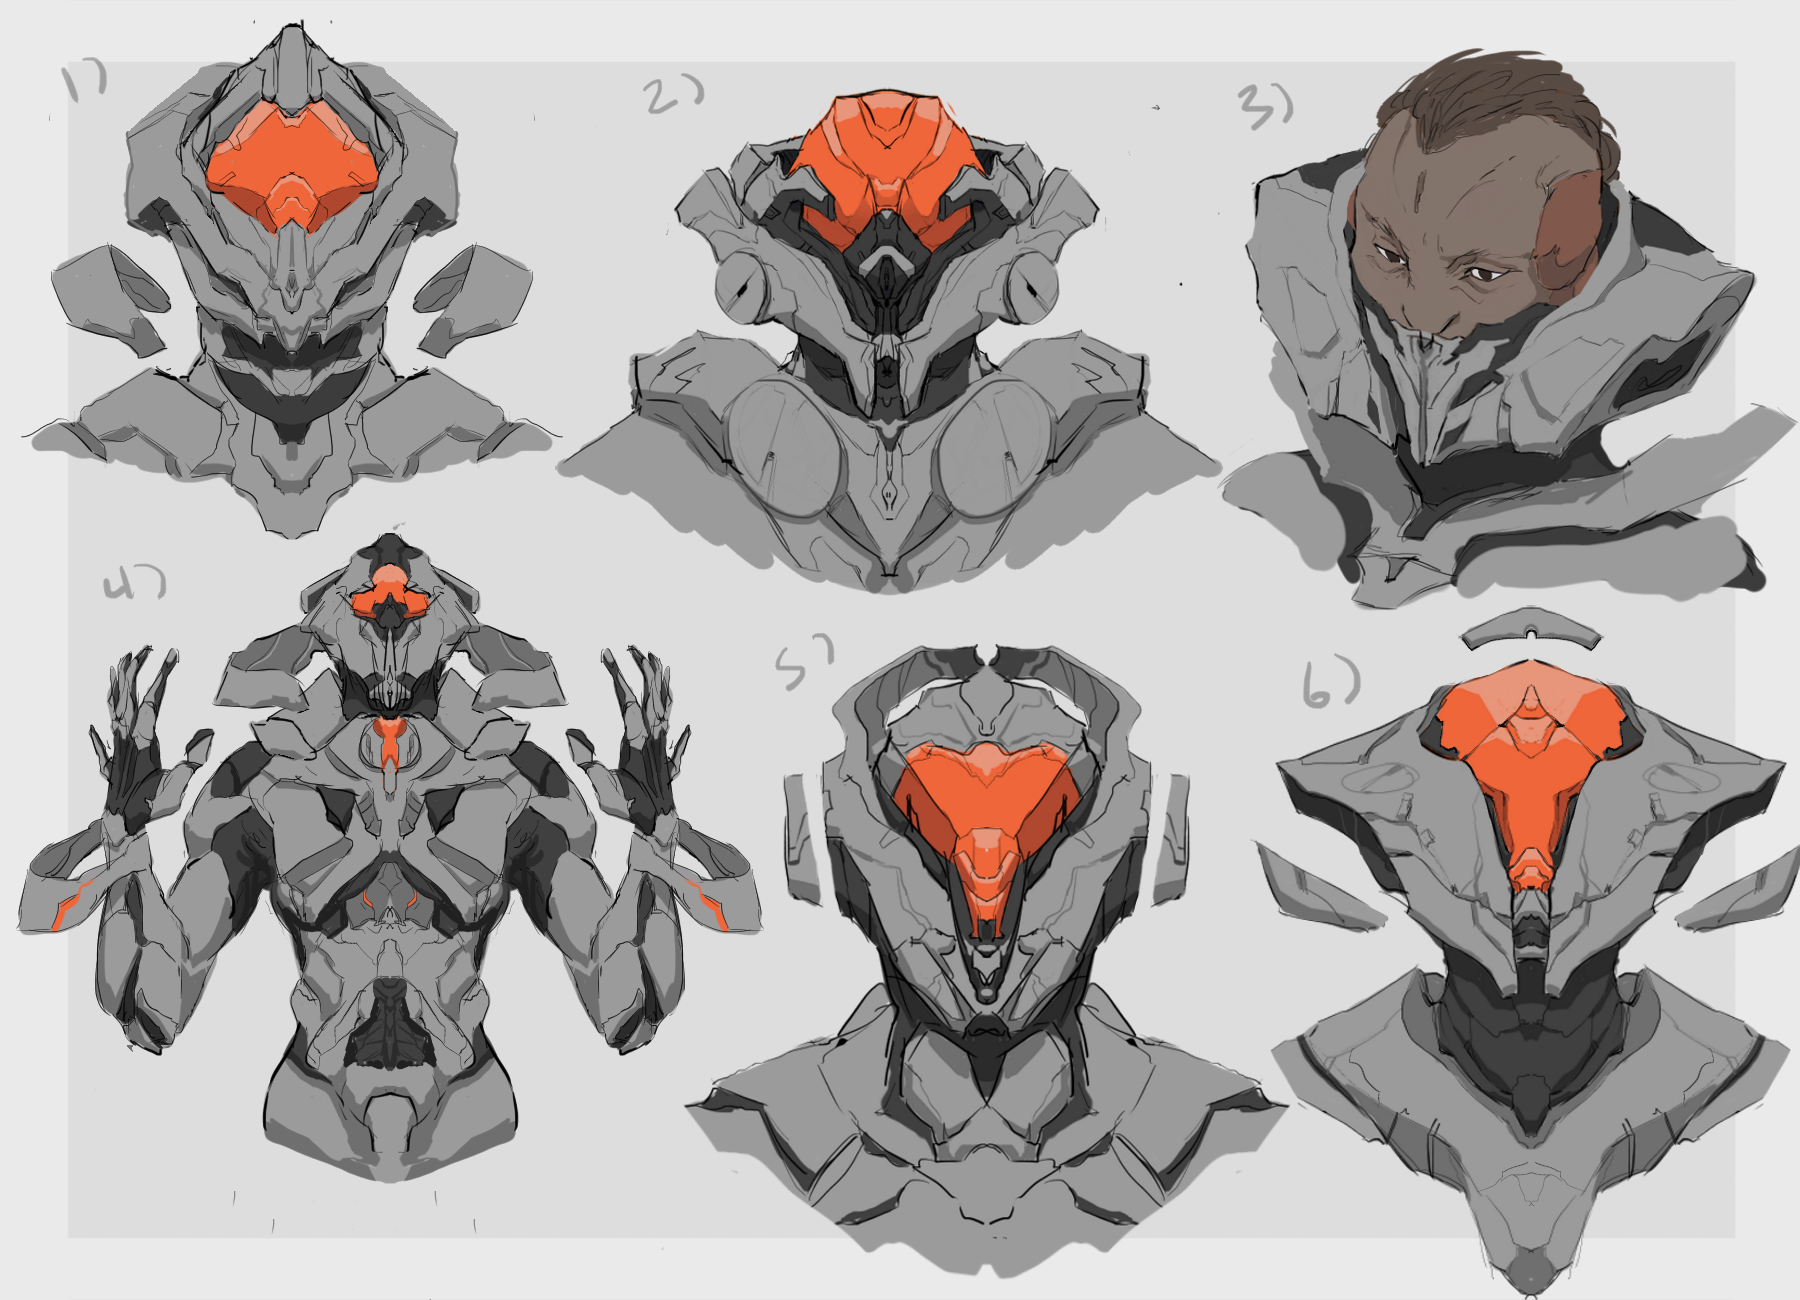 Forerunner concept art of potential portrait characters created by Elizabeth Cope.